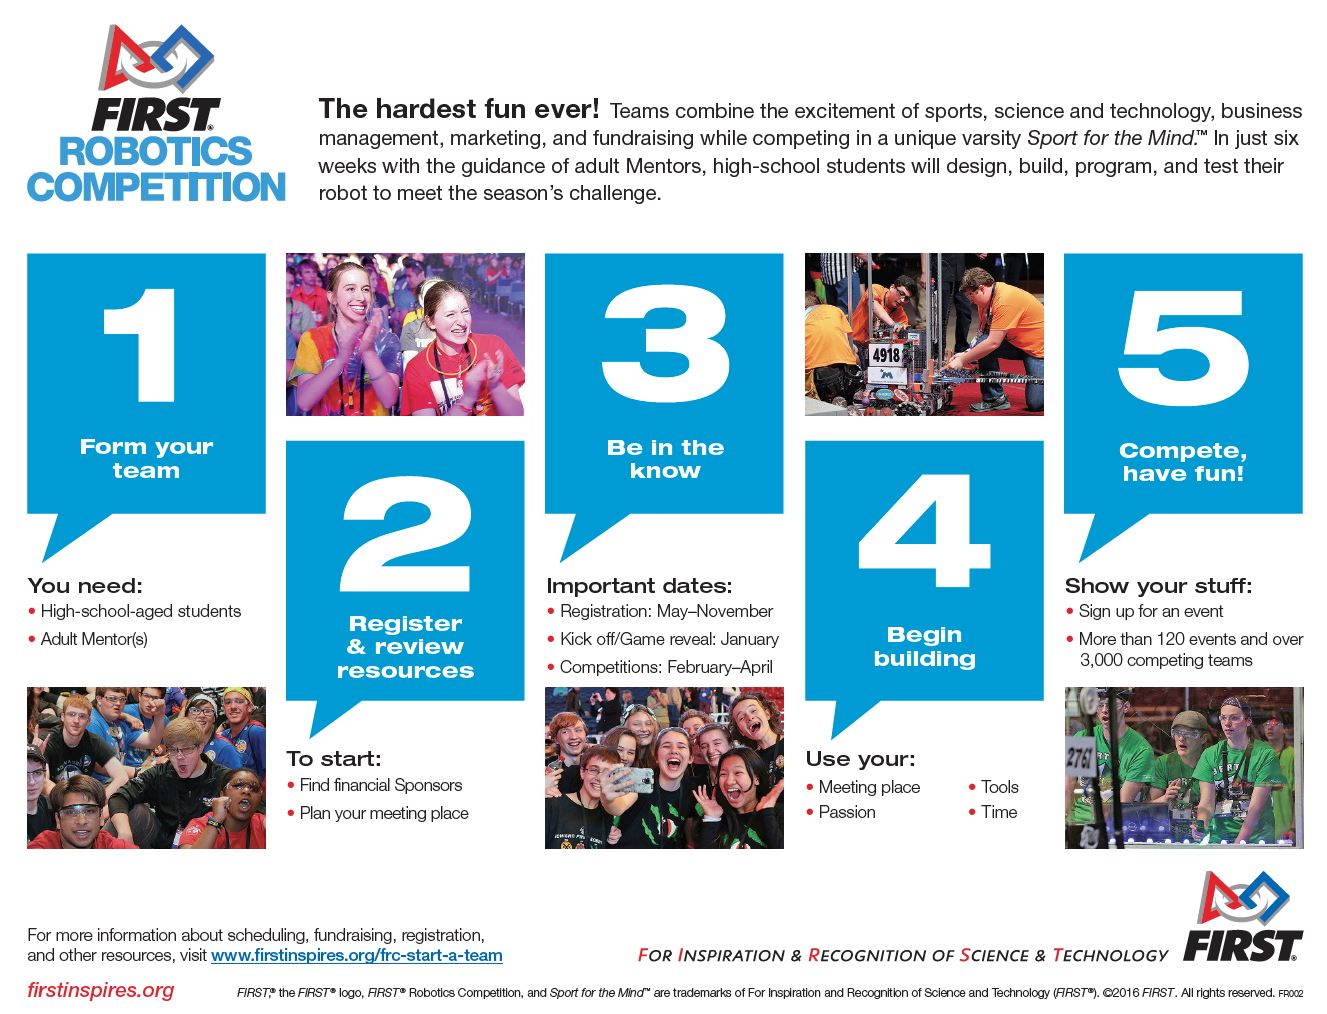 First Robotics Competition infographic